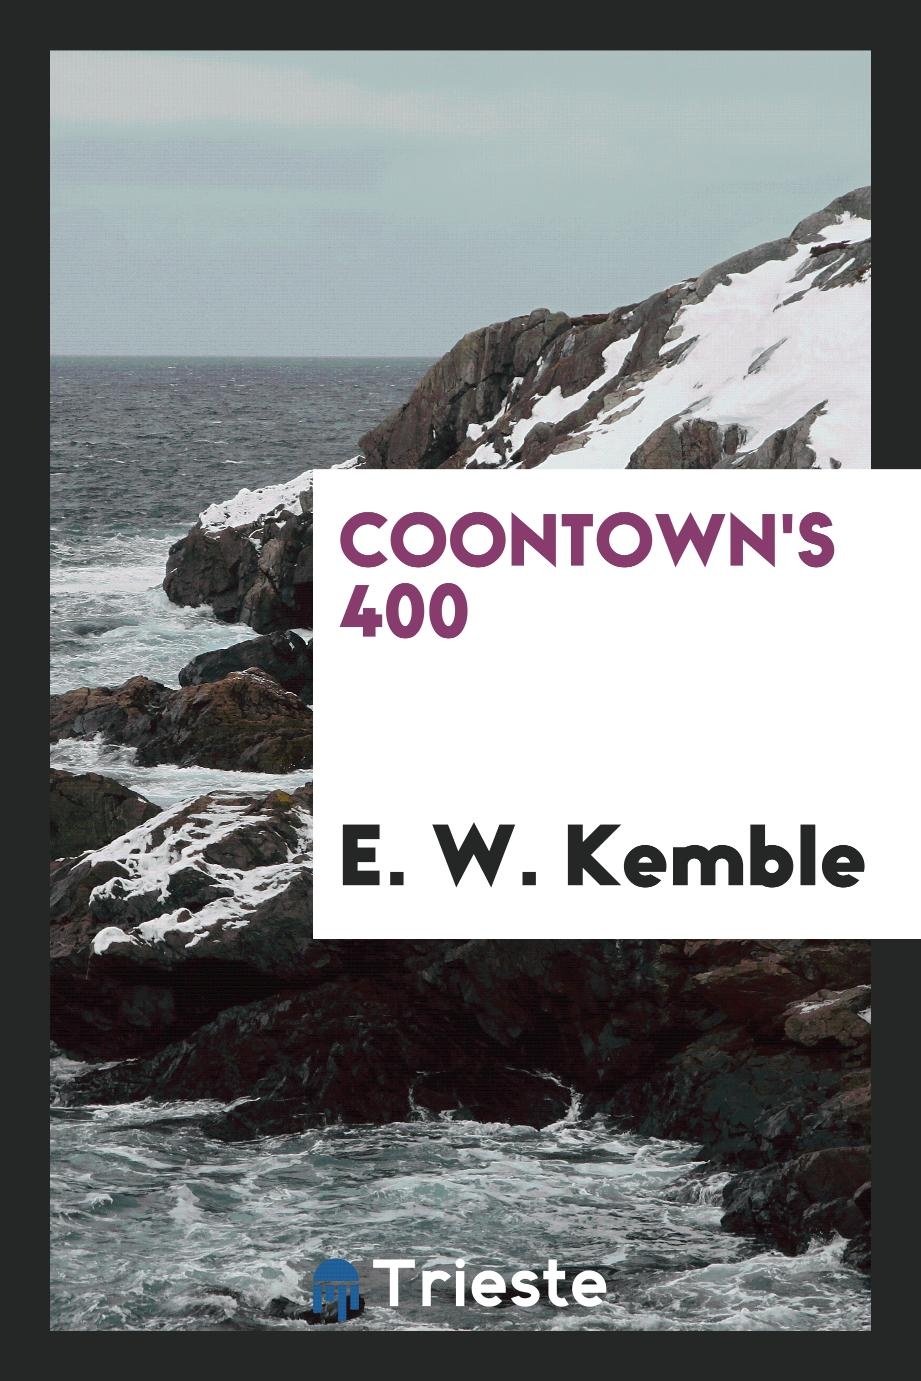 Coontown's 400